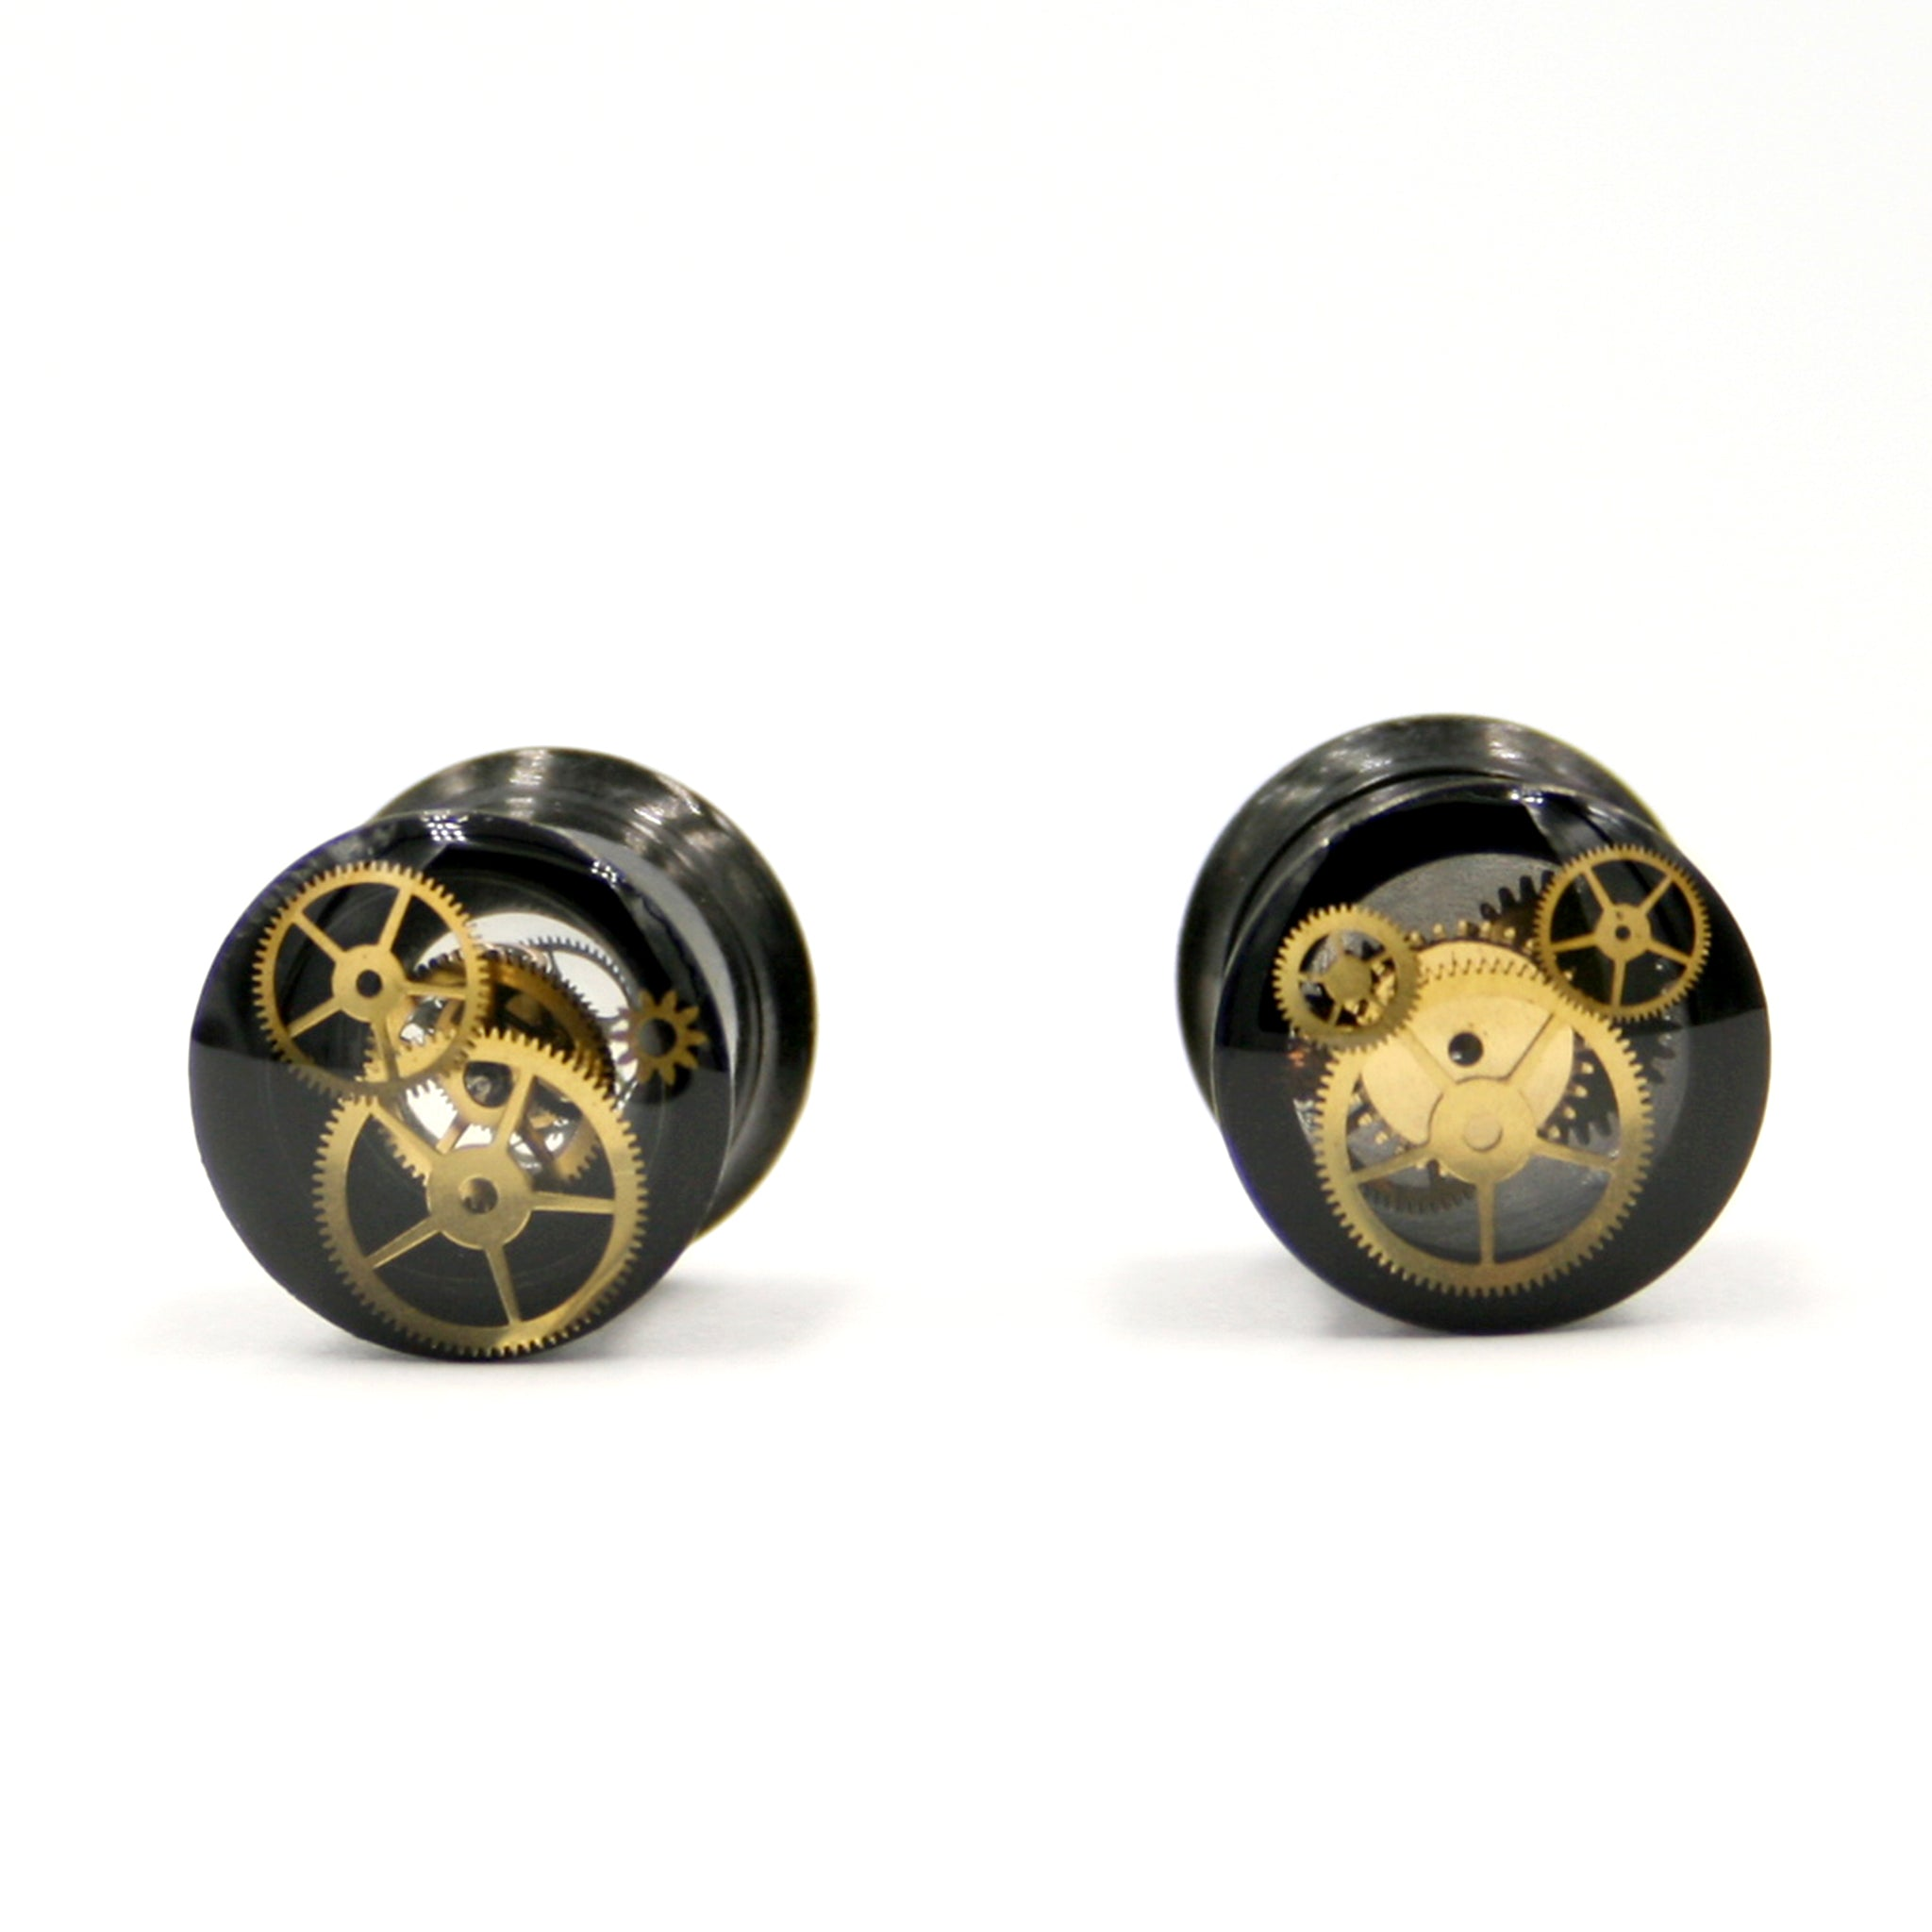 8mm double flare small ear gauges in steampunk style